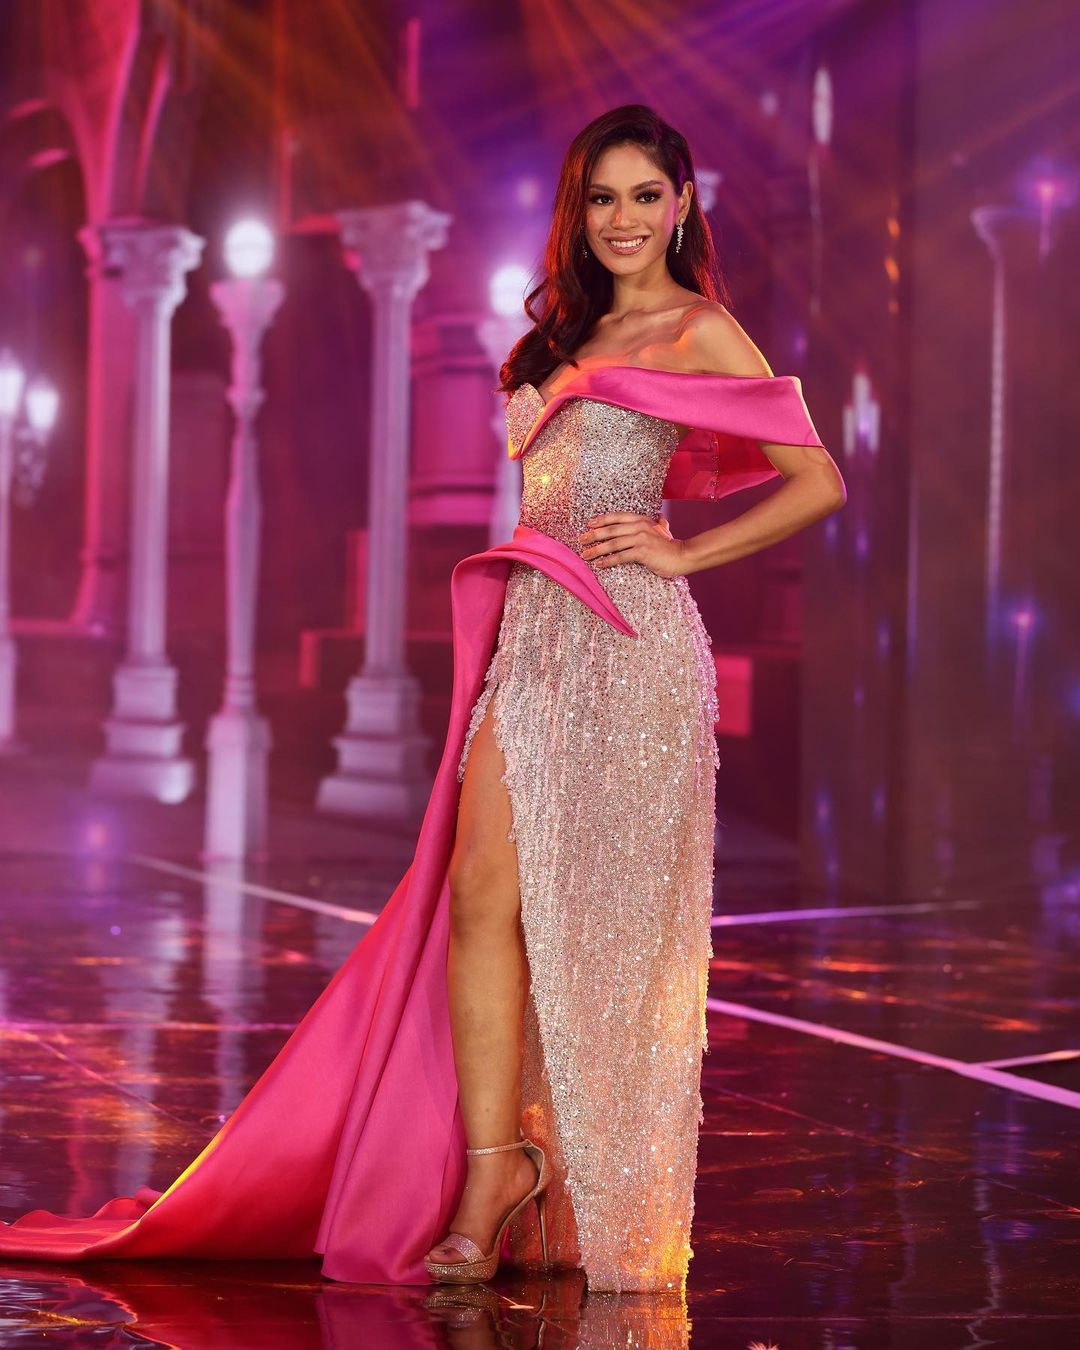 miss universe philippines 2021 top 10 gowns